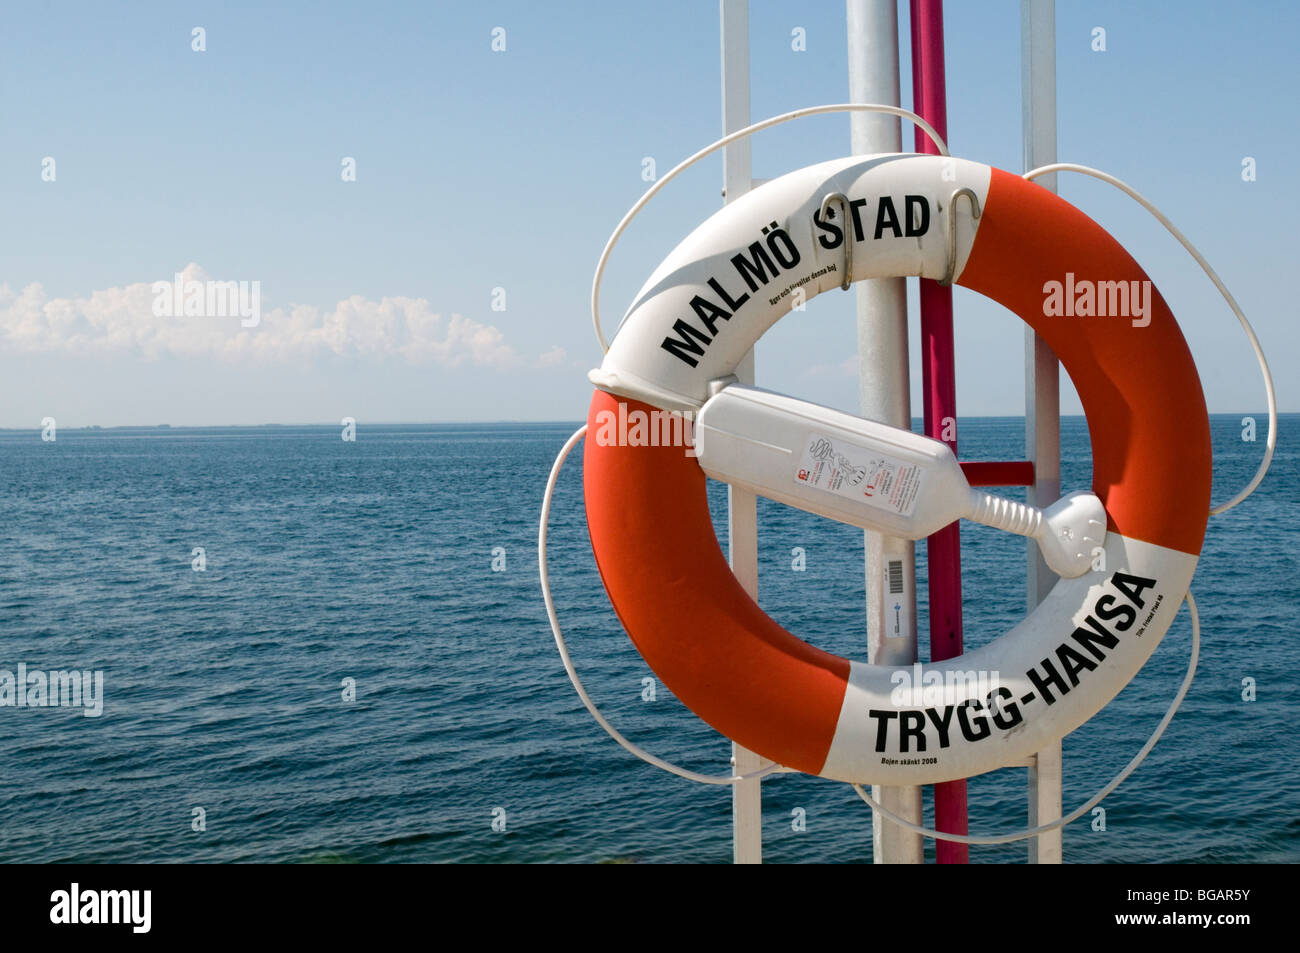 lifebelt lifebelts life belts belt ring lifeguard lifeguards life guards guard safety  Lifebelt, life, belt, ring, - Stock Image